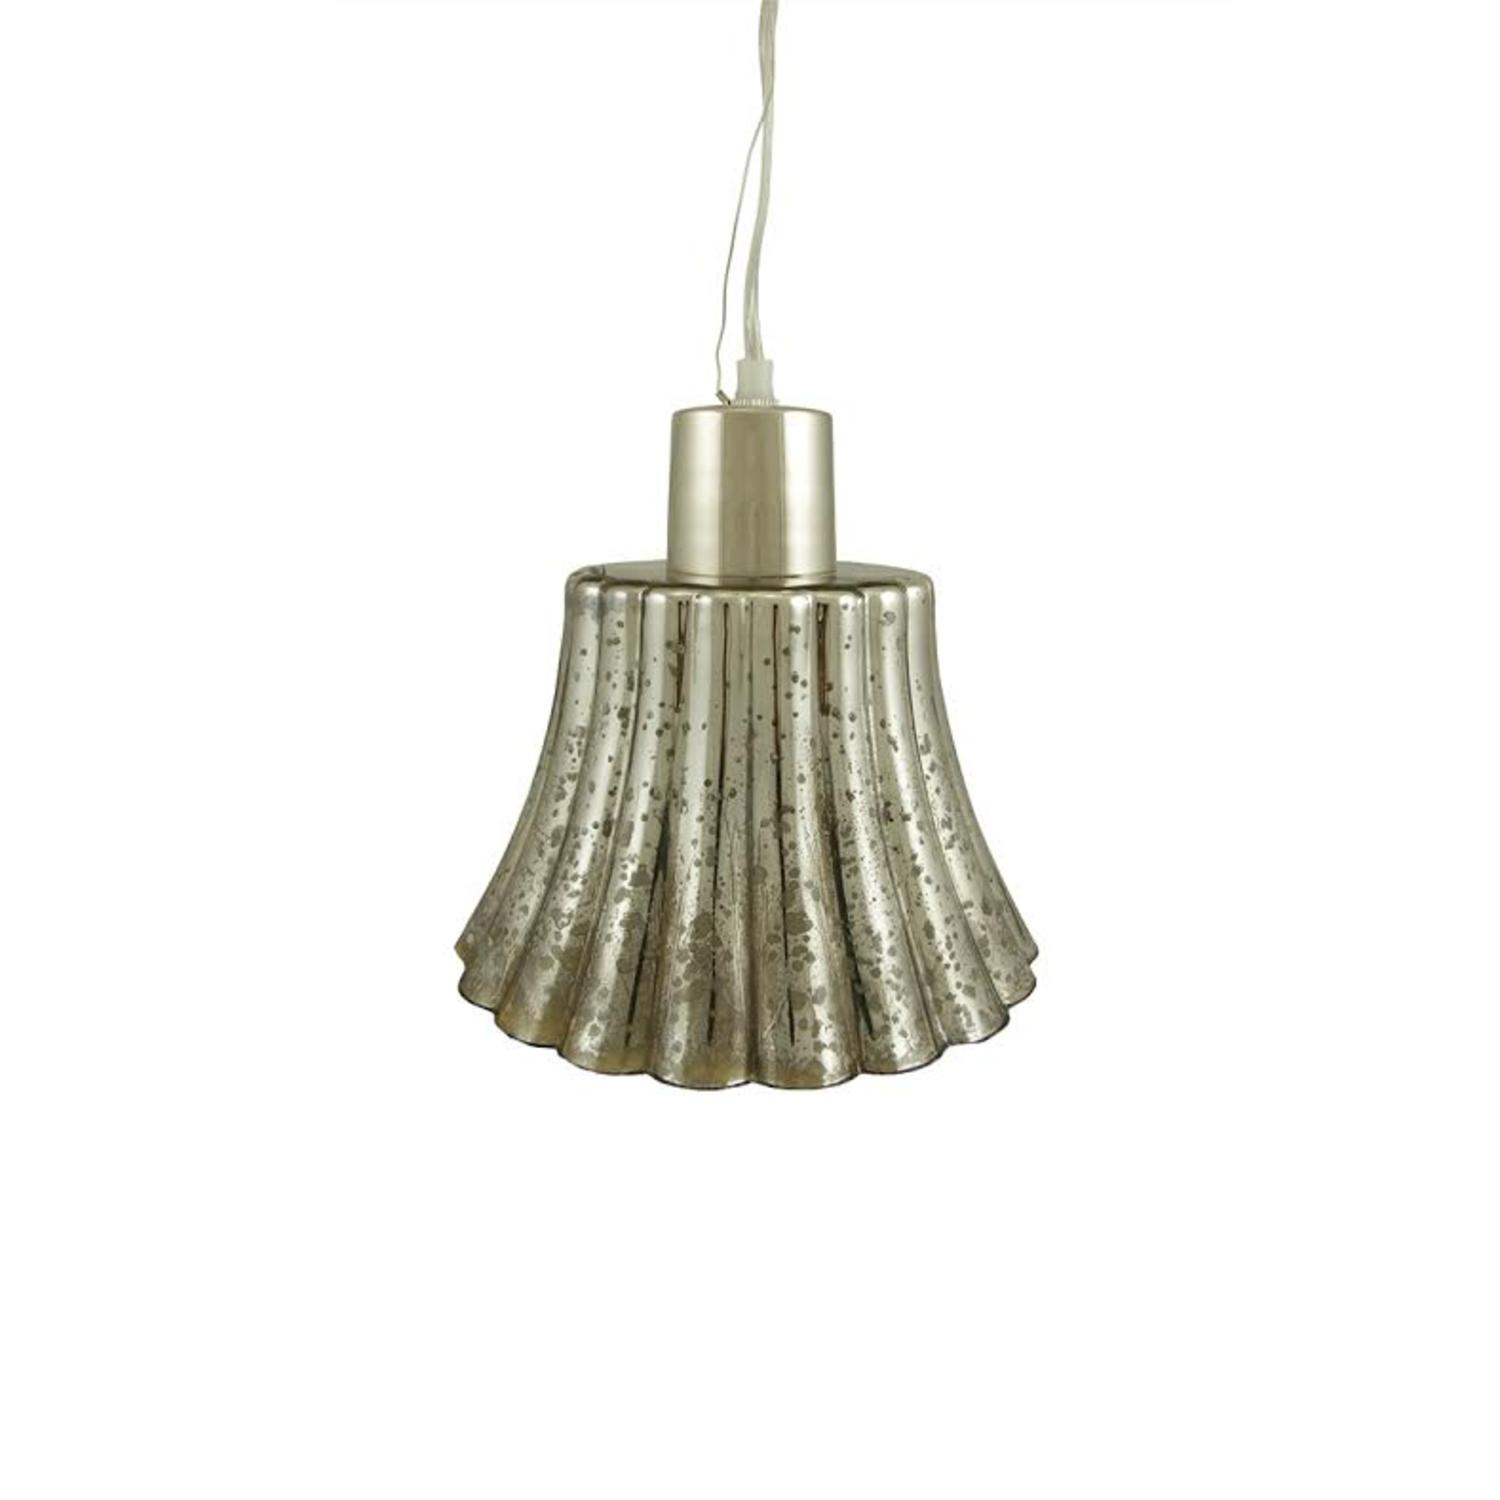 "9"" Metallic Mercury Glass Bell Hanging Pendant Ceiling Lamp by CC Home Furnishings"